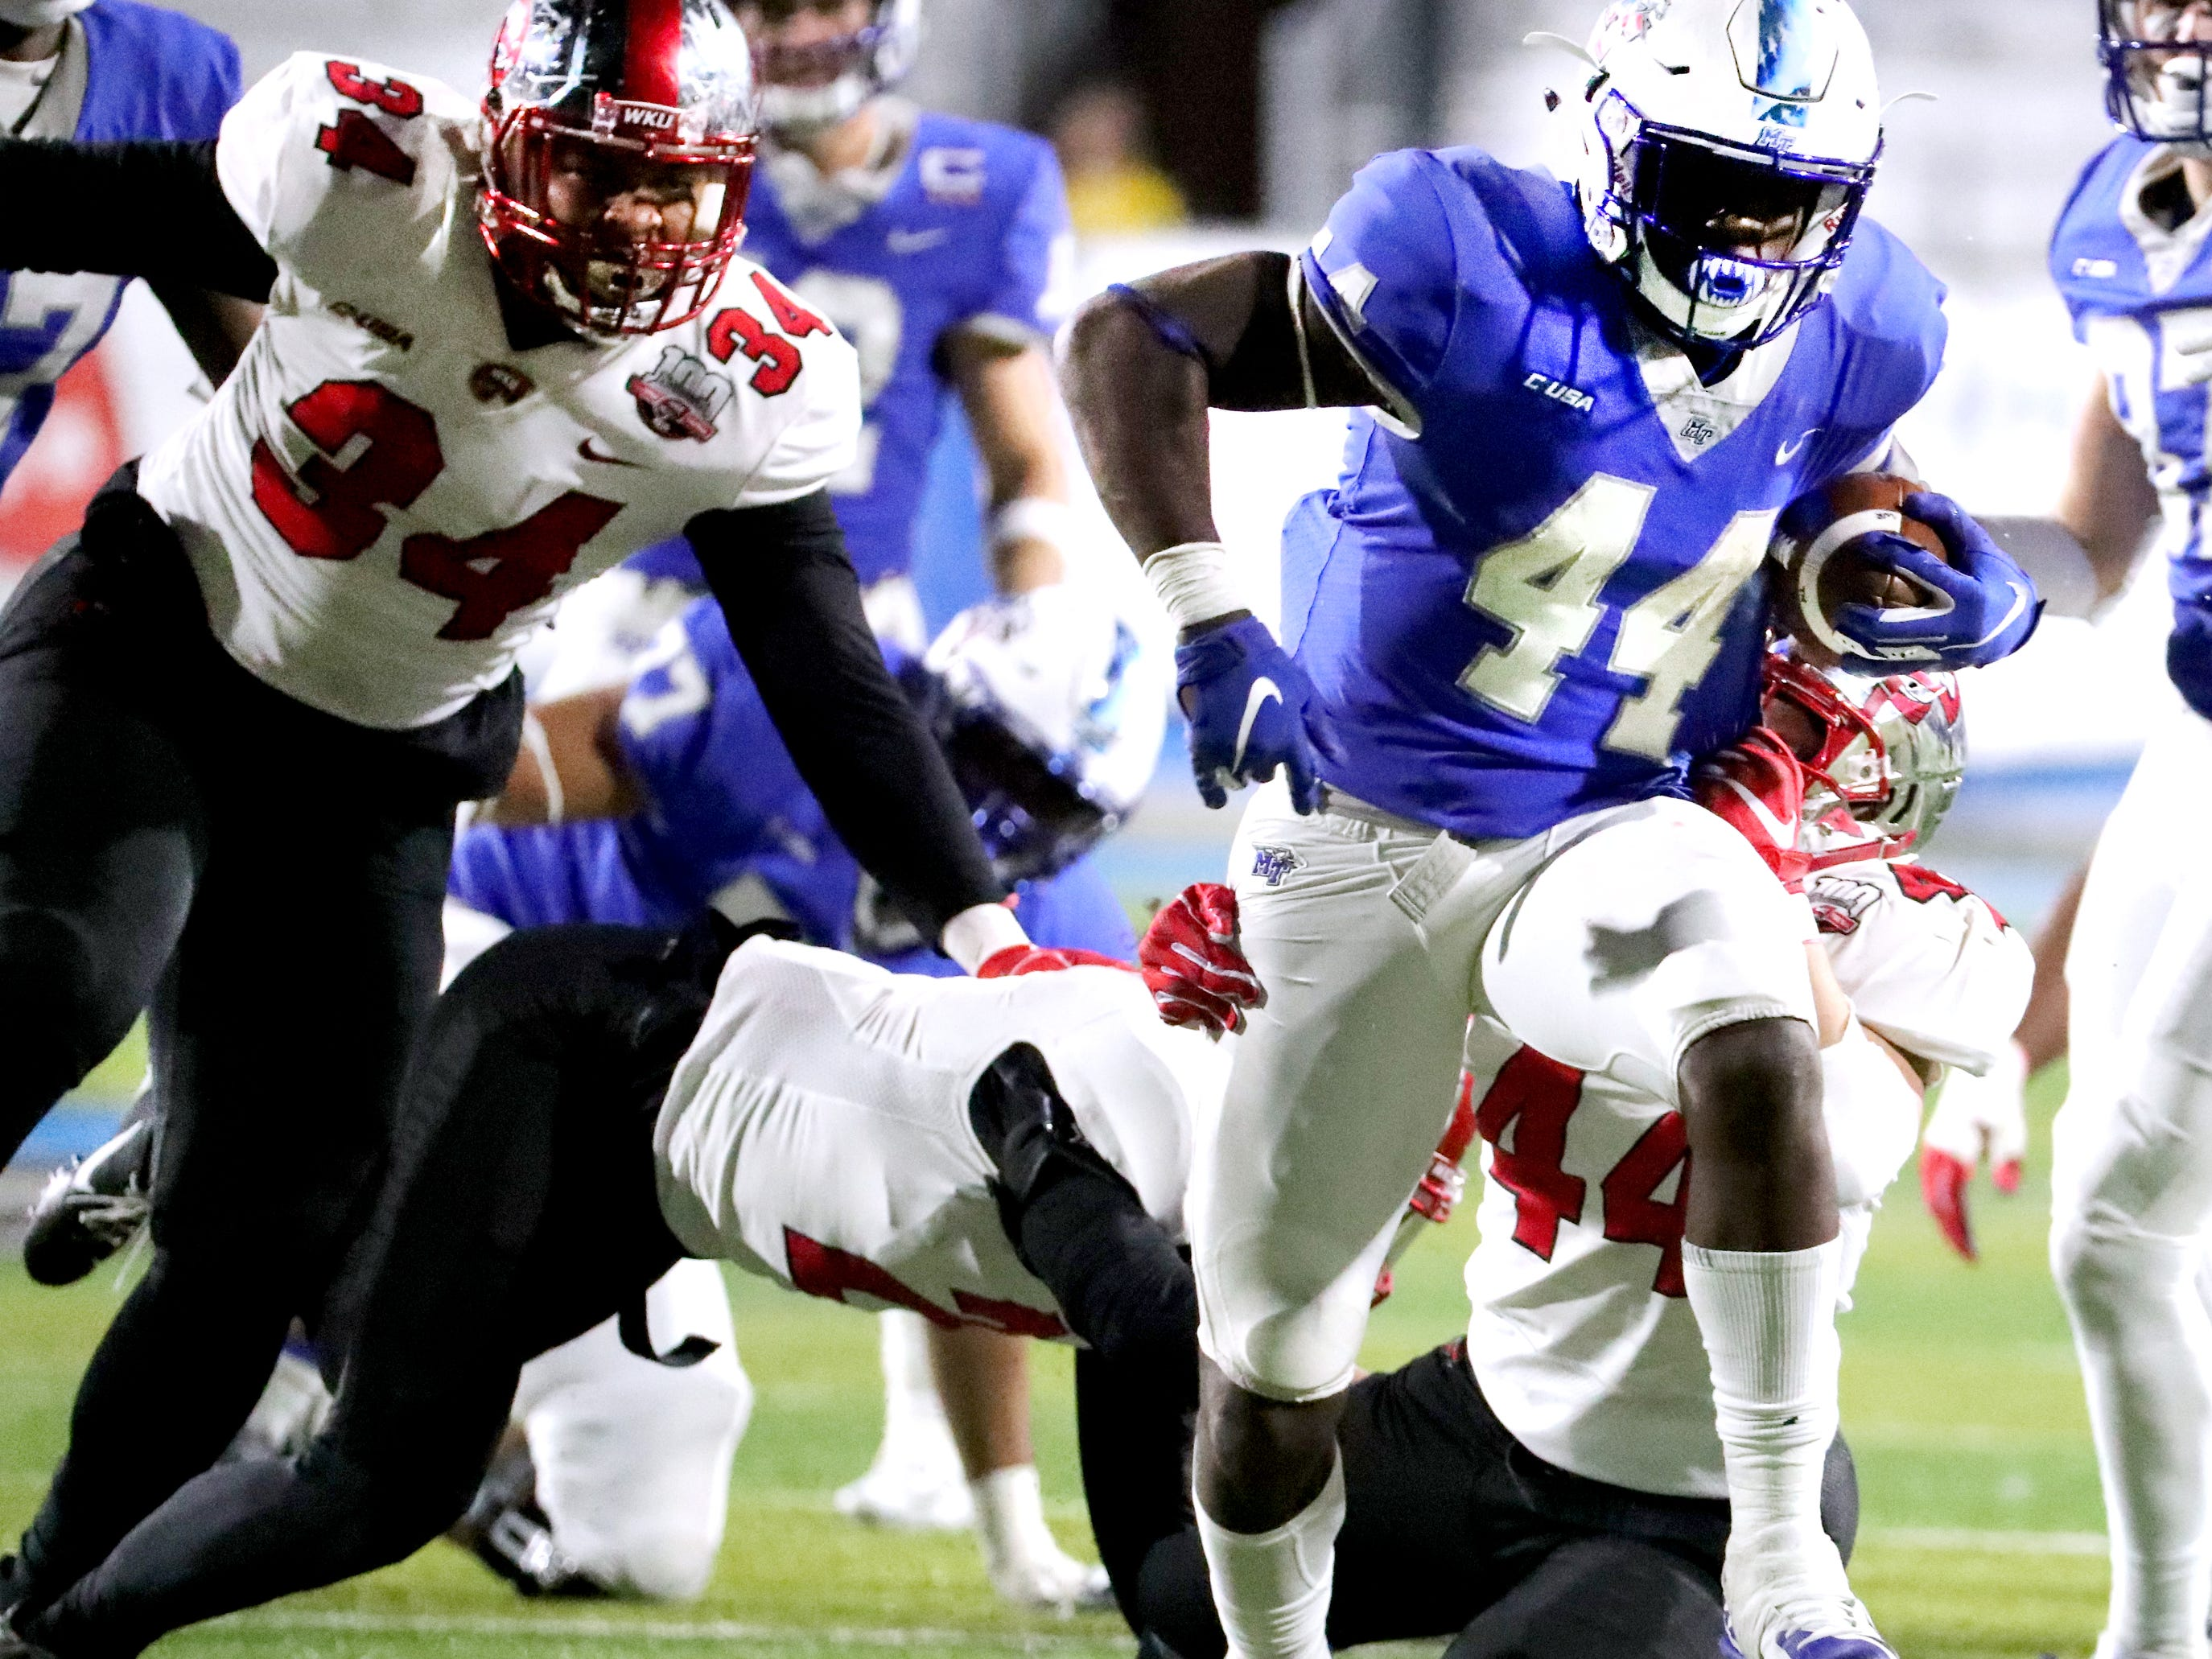 Up next: MTSU goes on the road to face UTEP